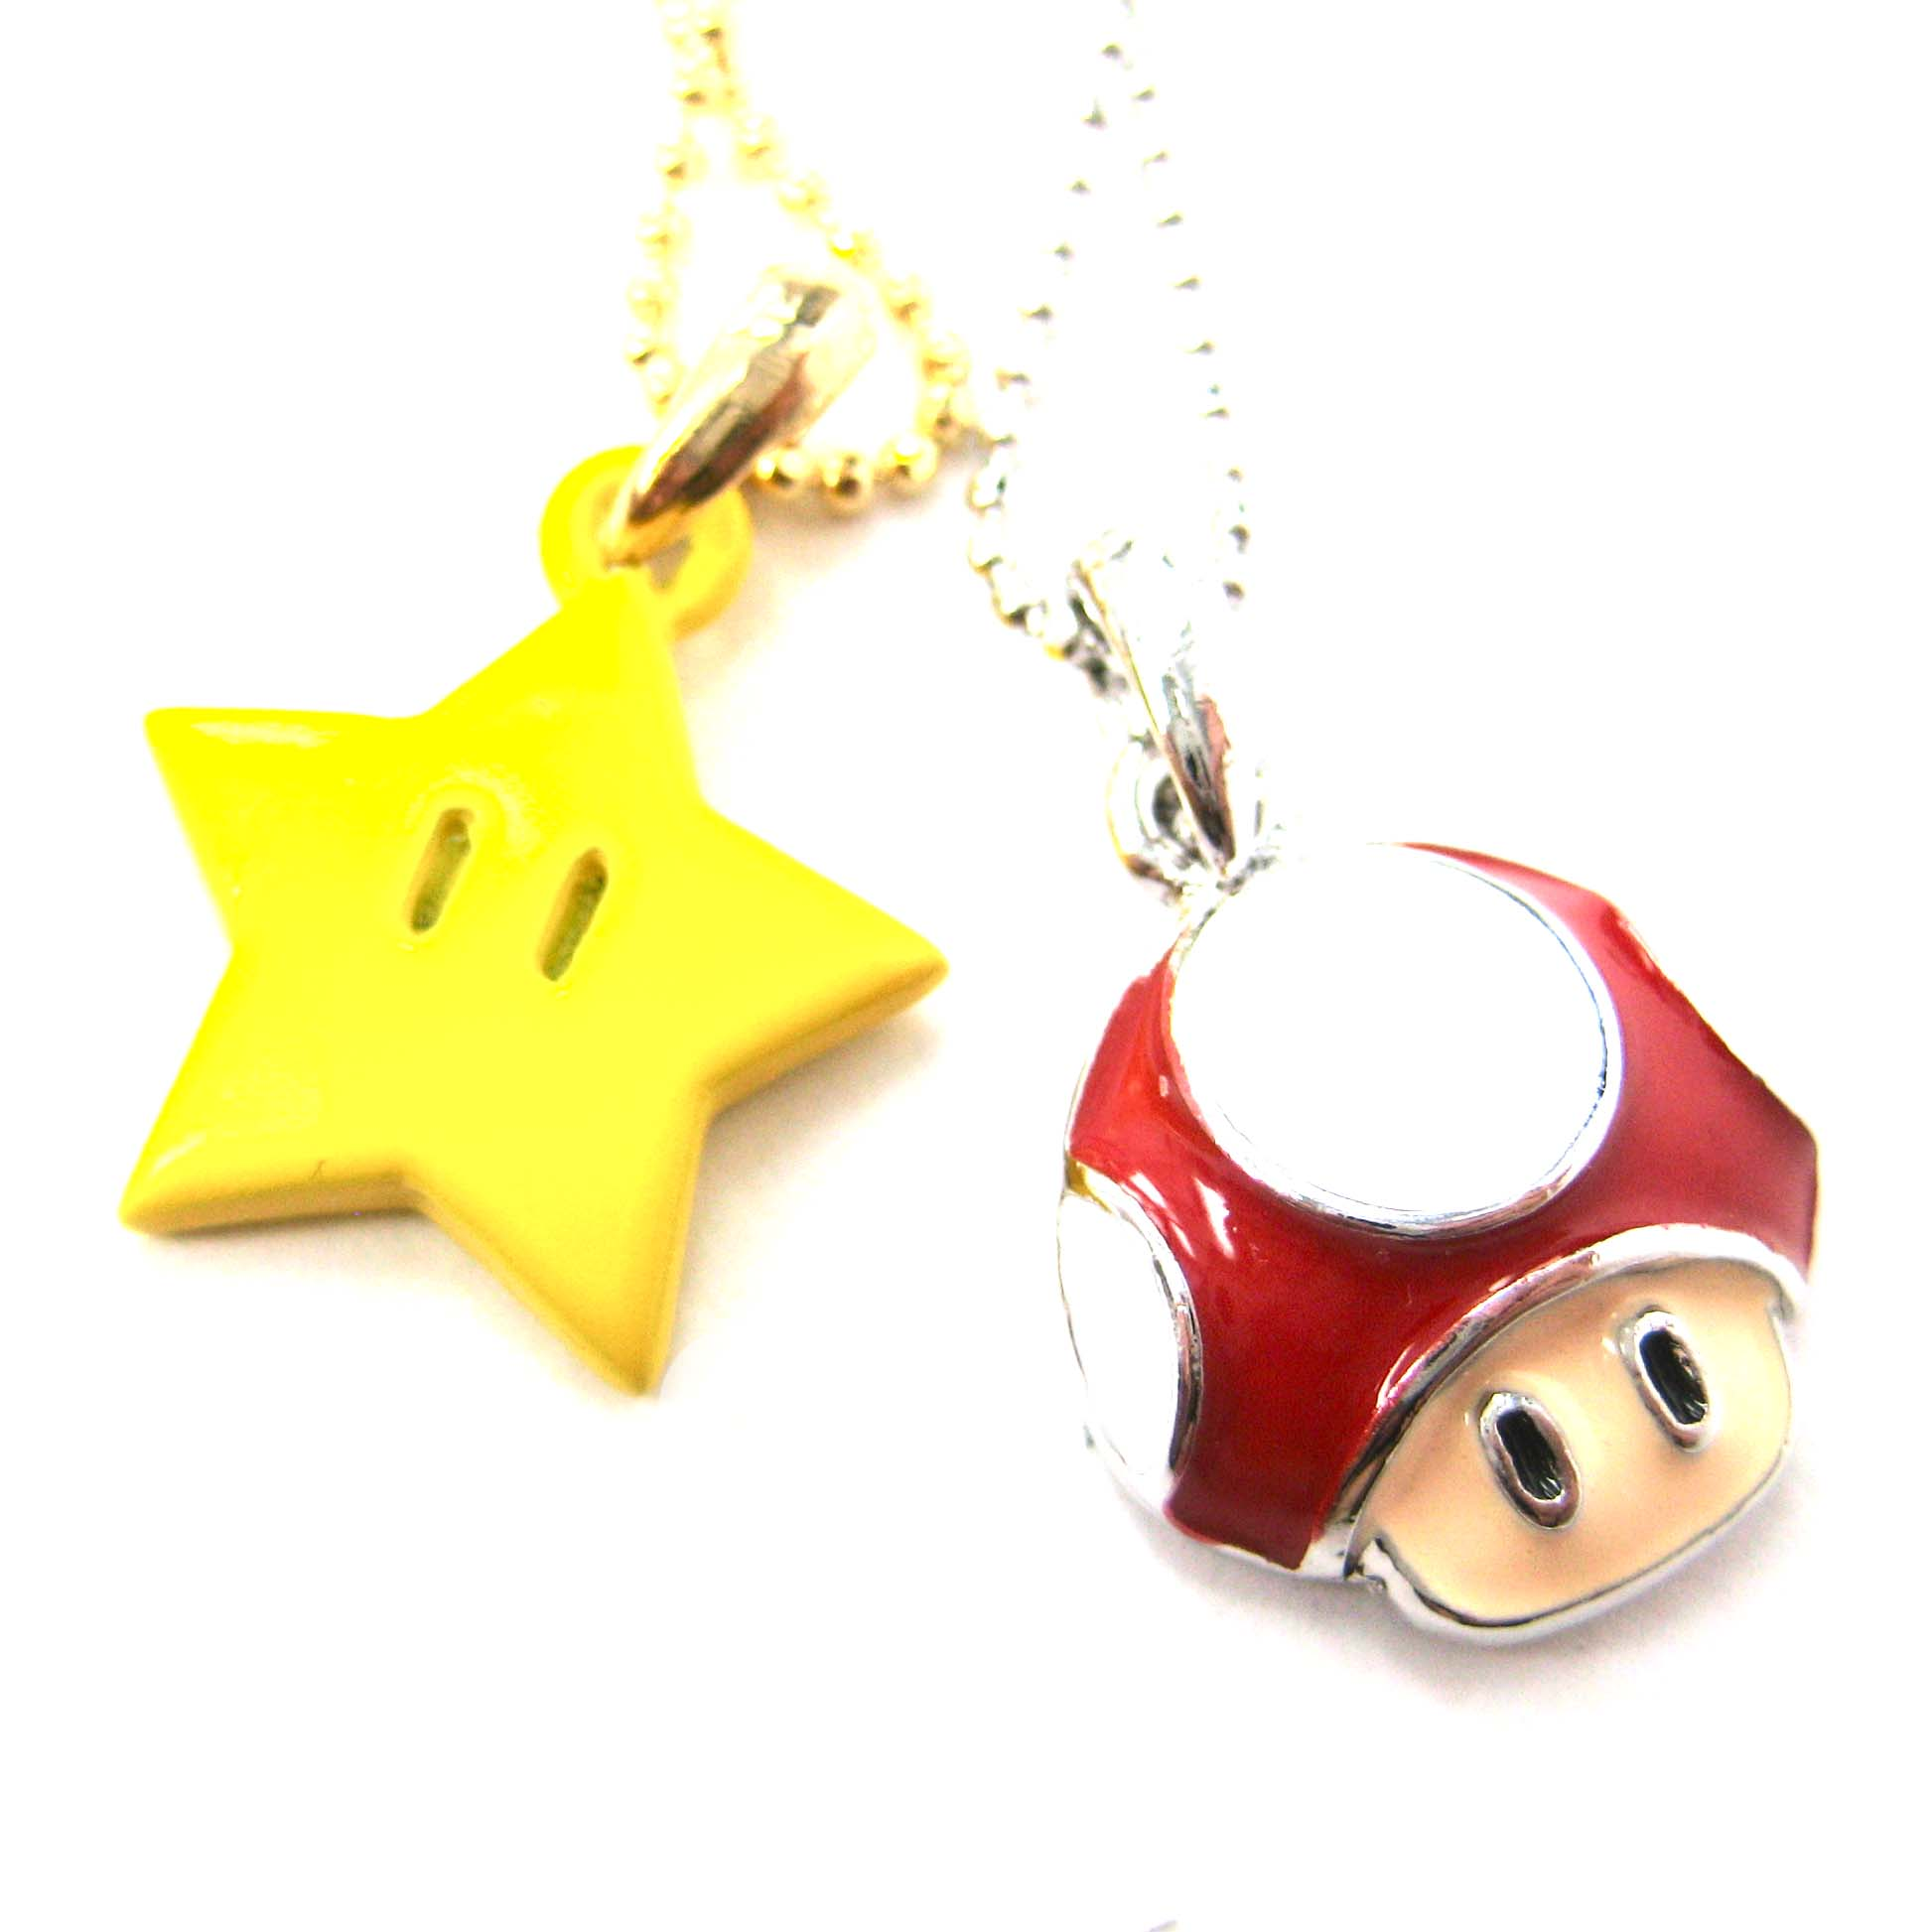 Super mario themed mushroom and super star power up pendant necklace super mario themed mushroom and super star power up pendant necklace mozeypictures Image collections